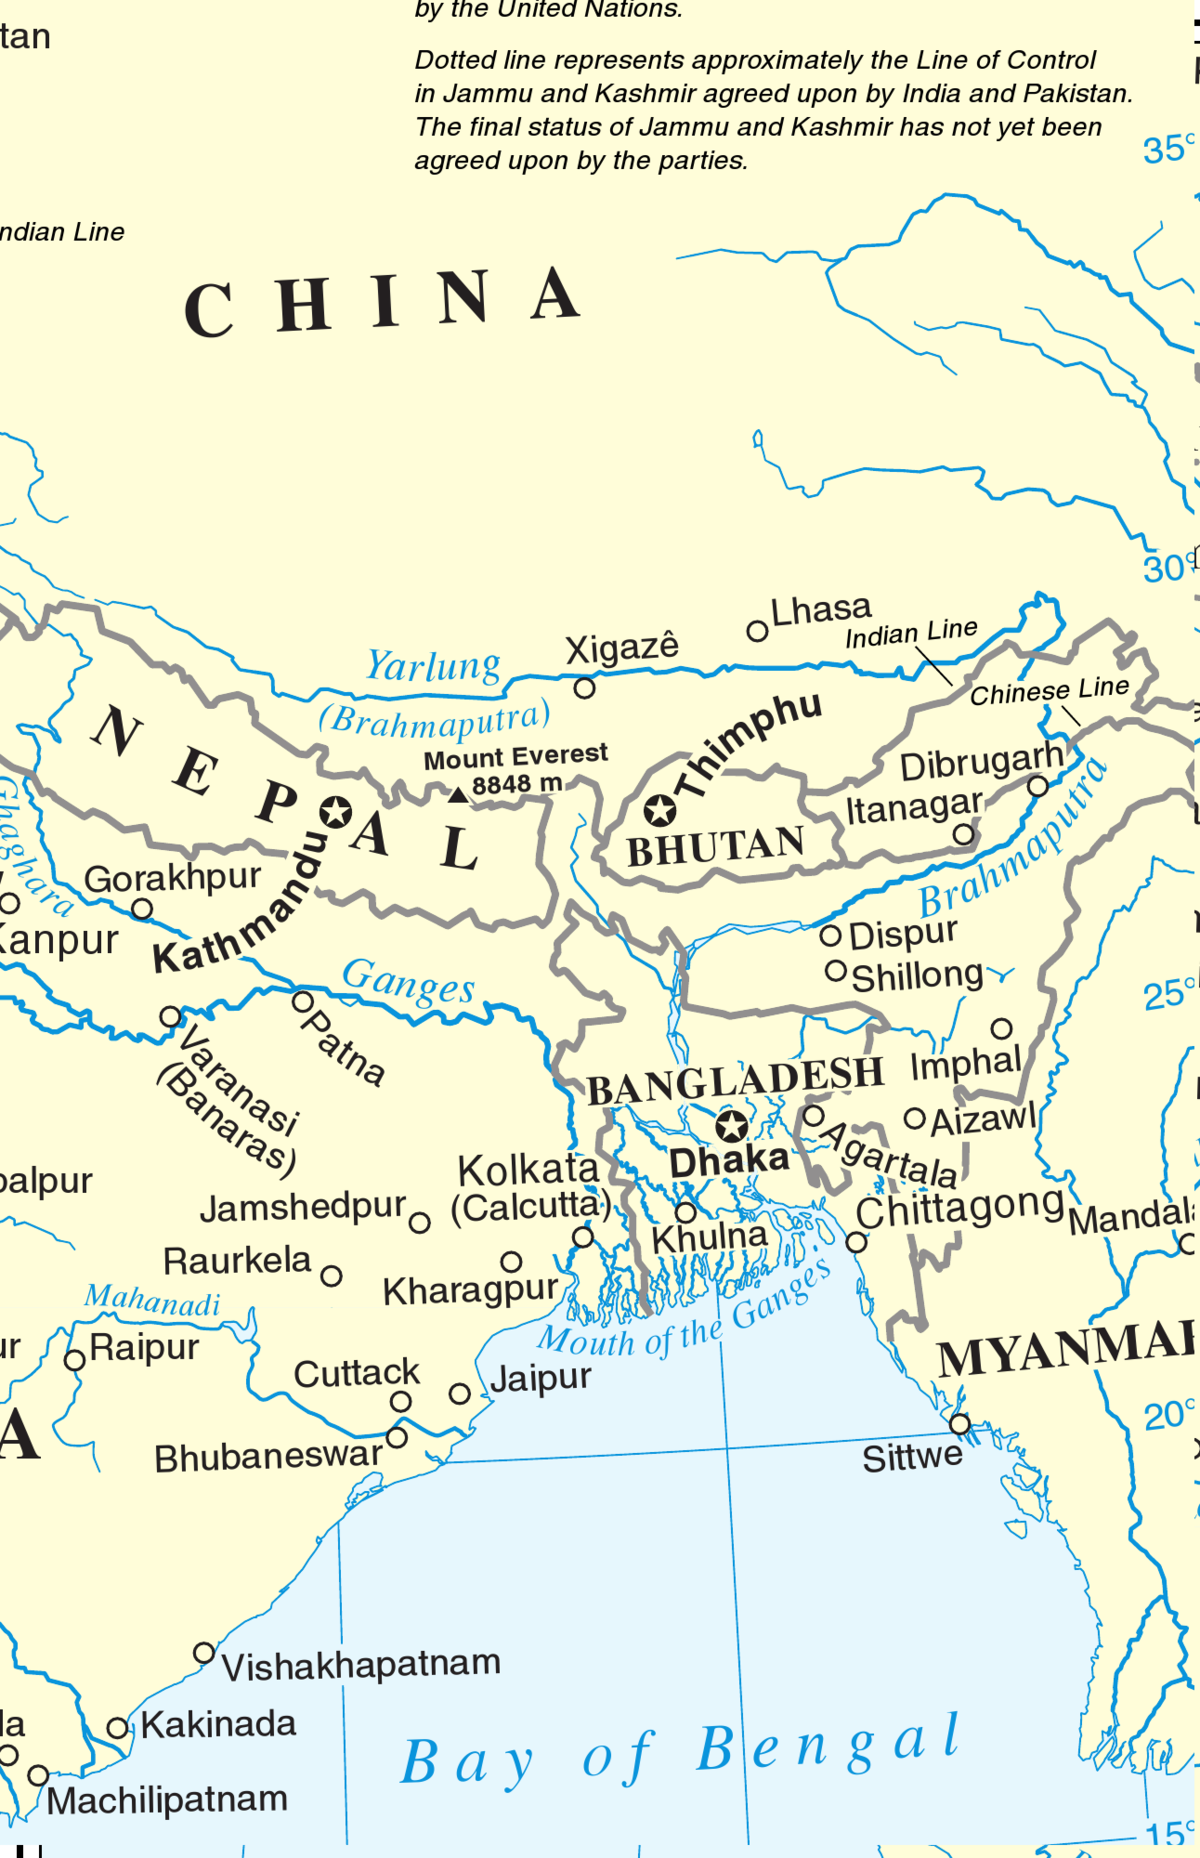 Eastern South Asia - Wikipedia